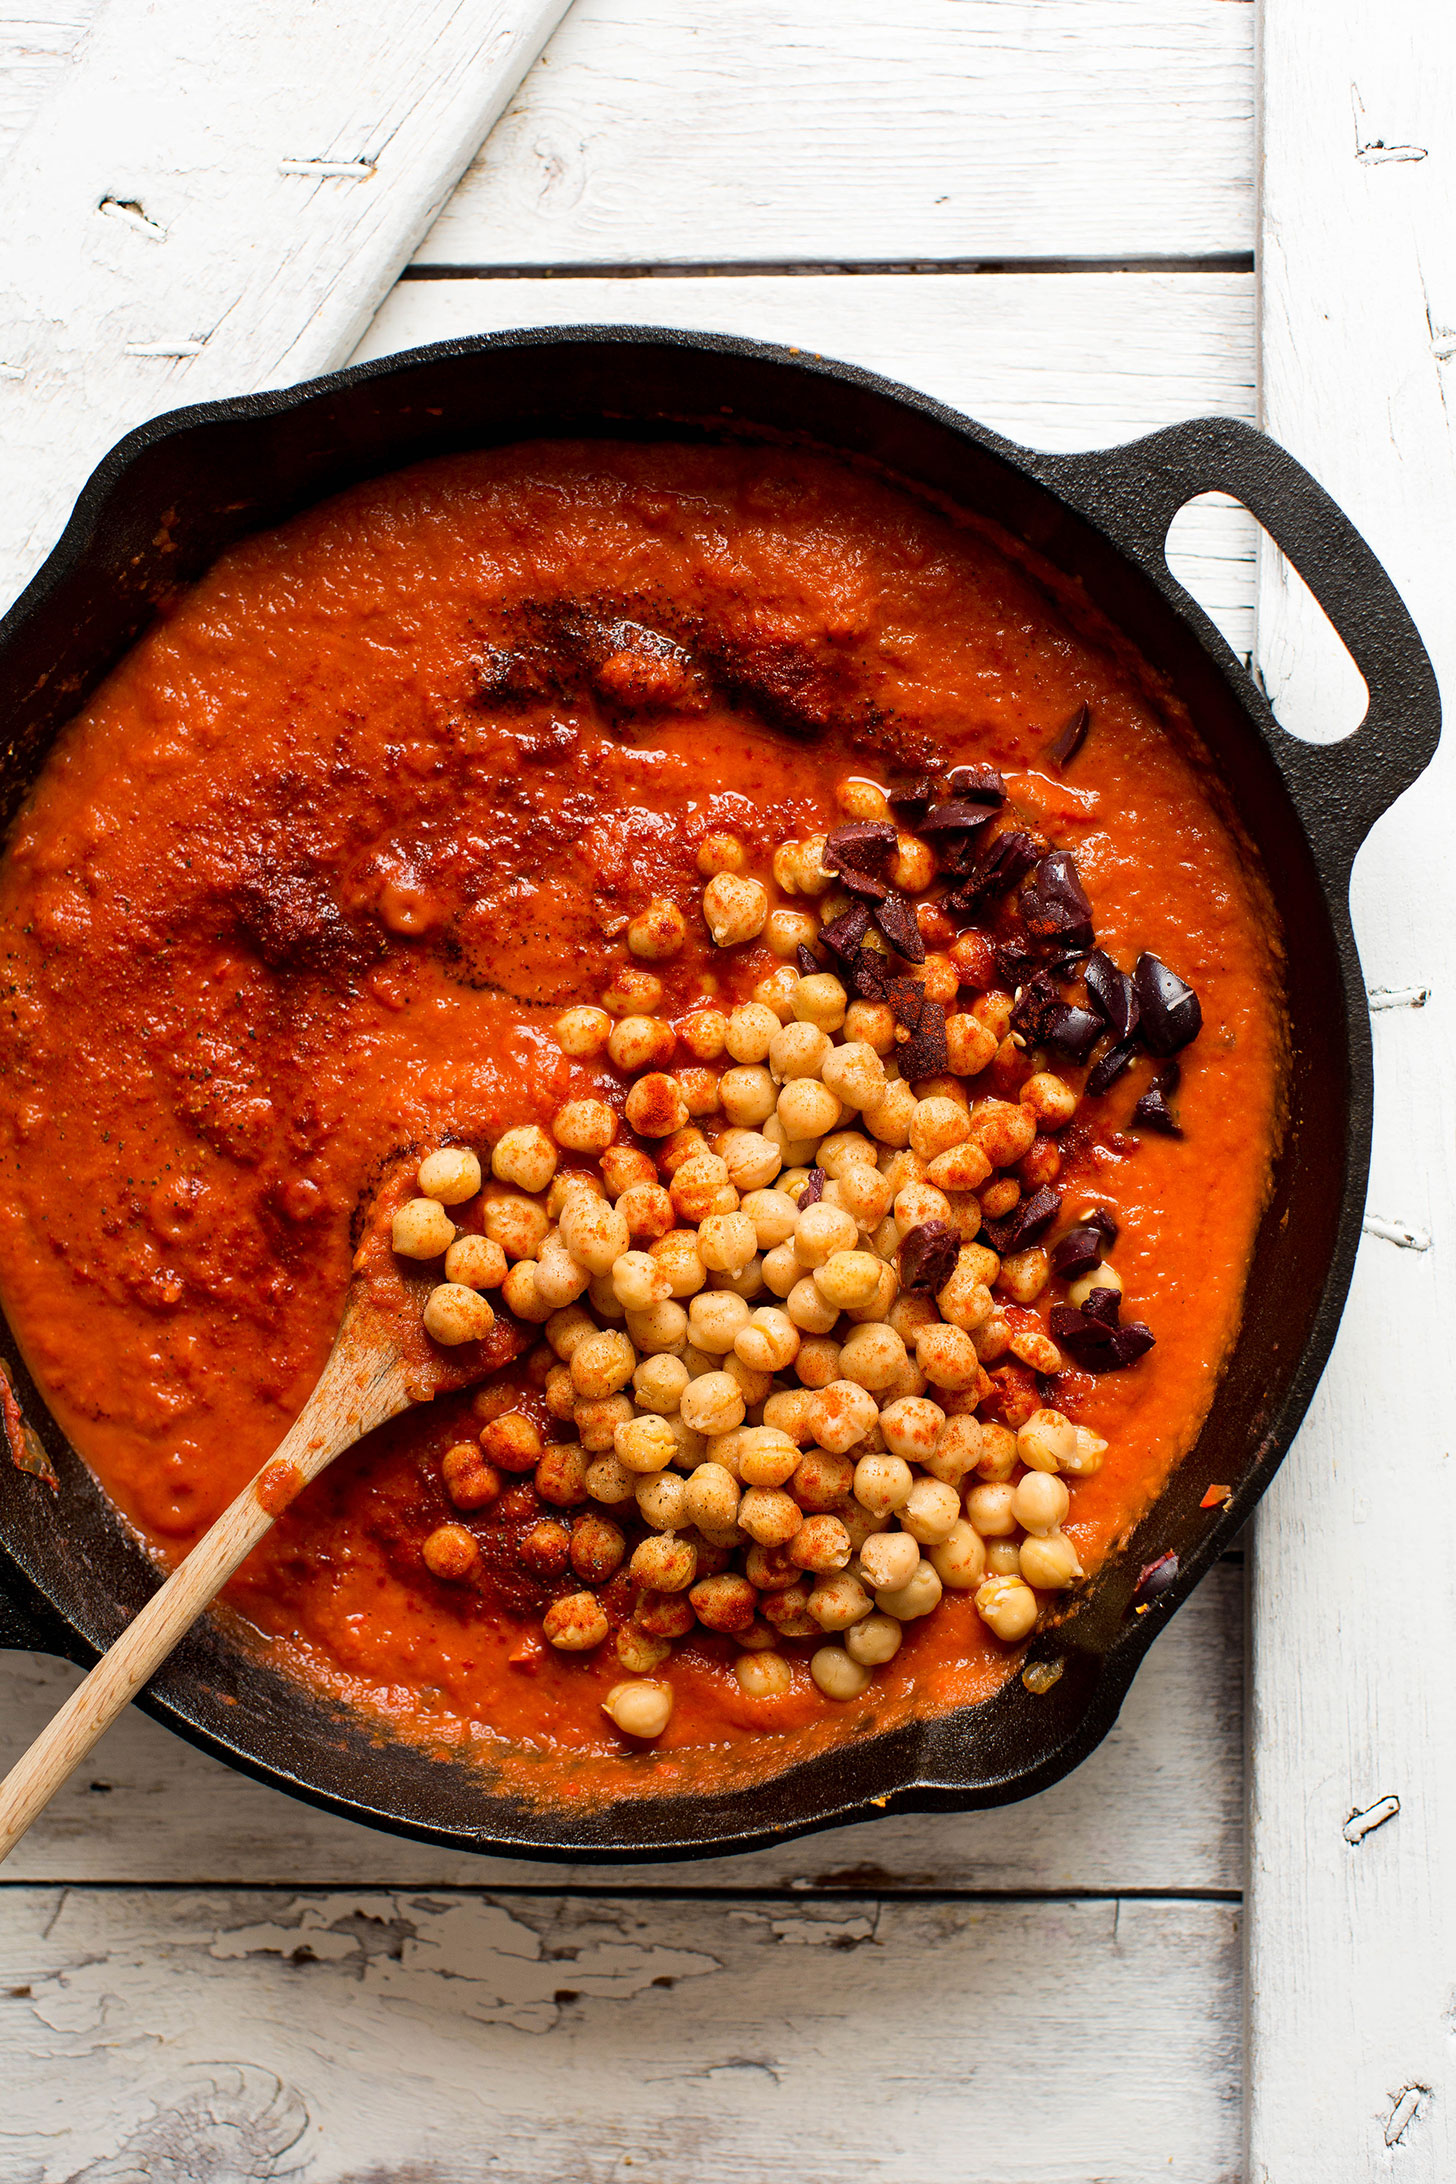 Stirring chickpeas into a cast-iron skillet filled with our gluten-free vegan Shakshuka recipe